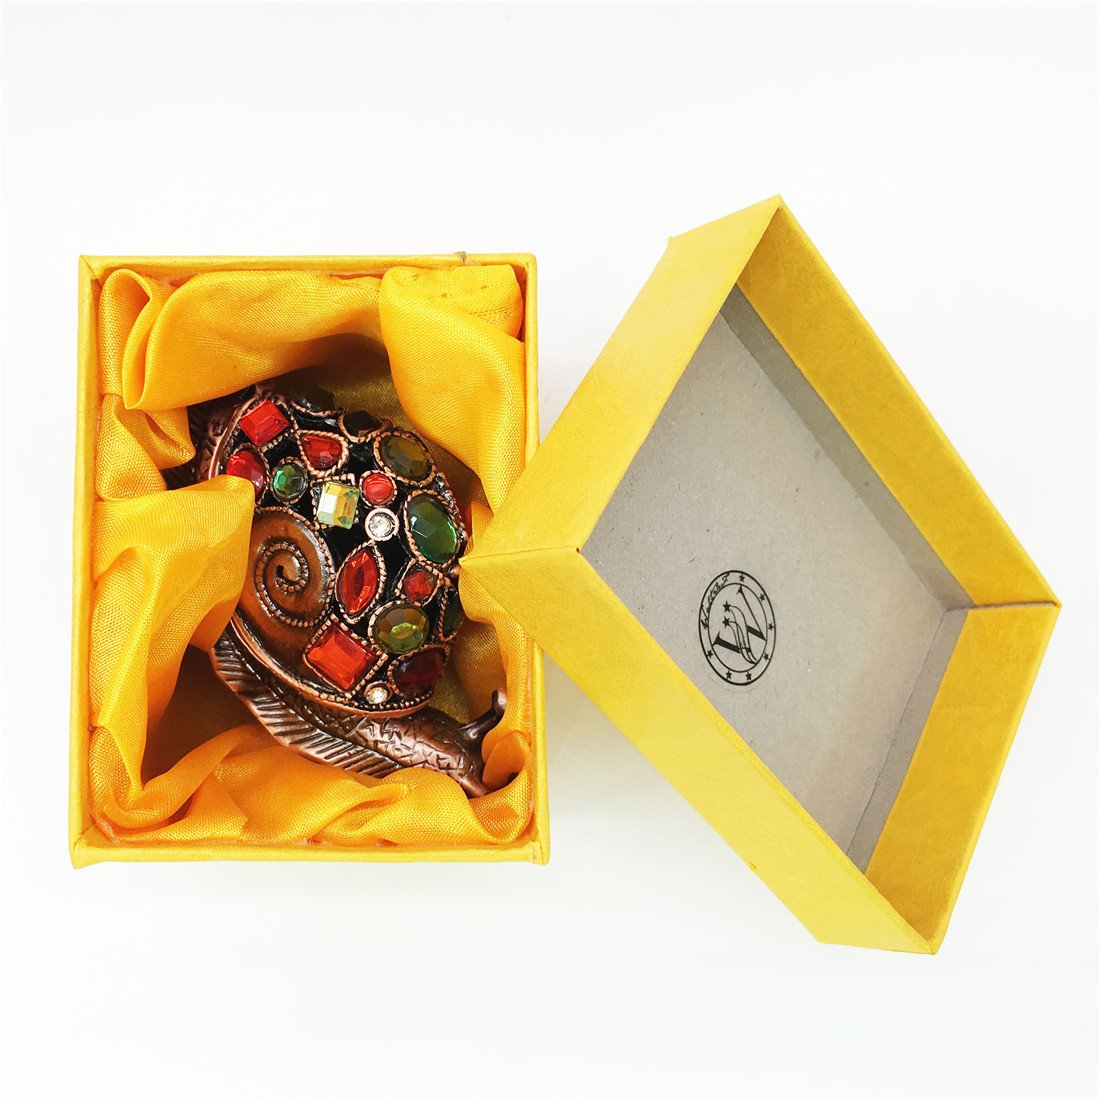 Waltz&F Bronze snail Figurine Collectible Hinged Trinket Box Bejeweled Hand-painted Ring Holder